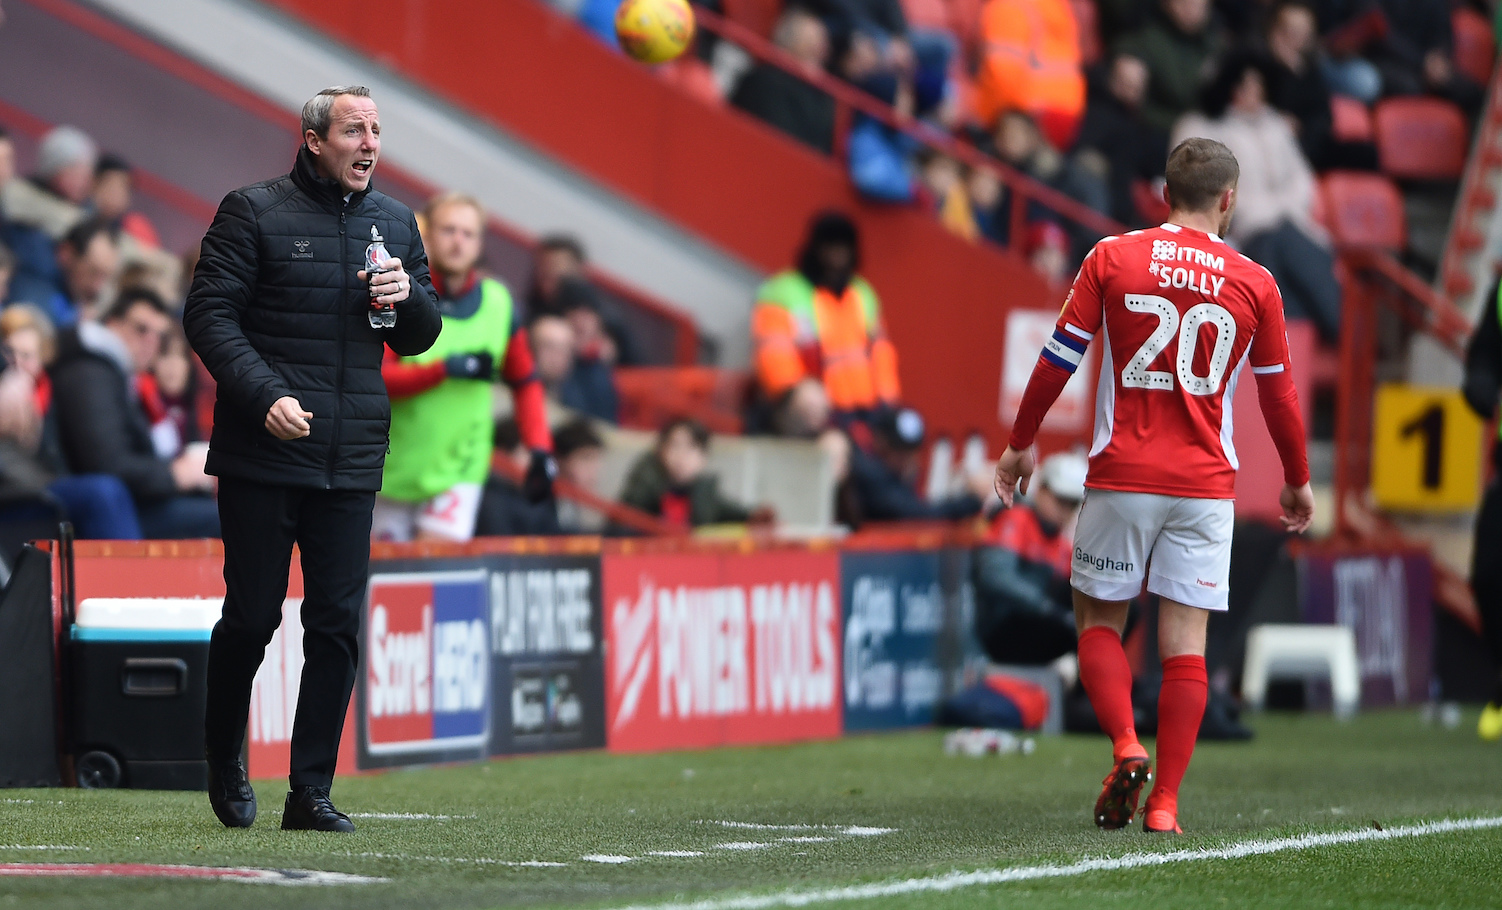 Charlton Athletic 1-0 Accrington Stanley: Added-time penalty